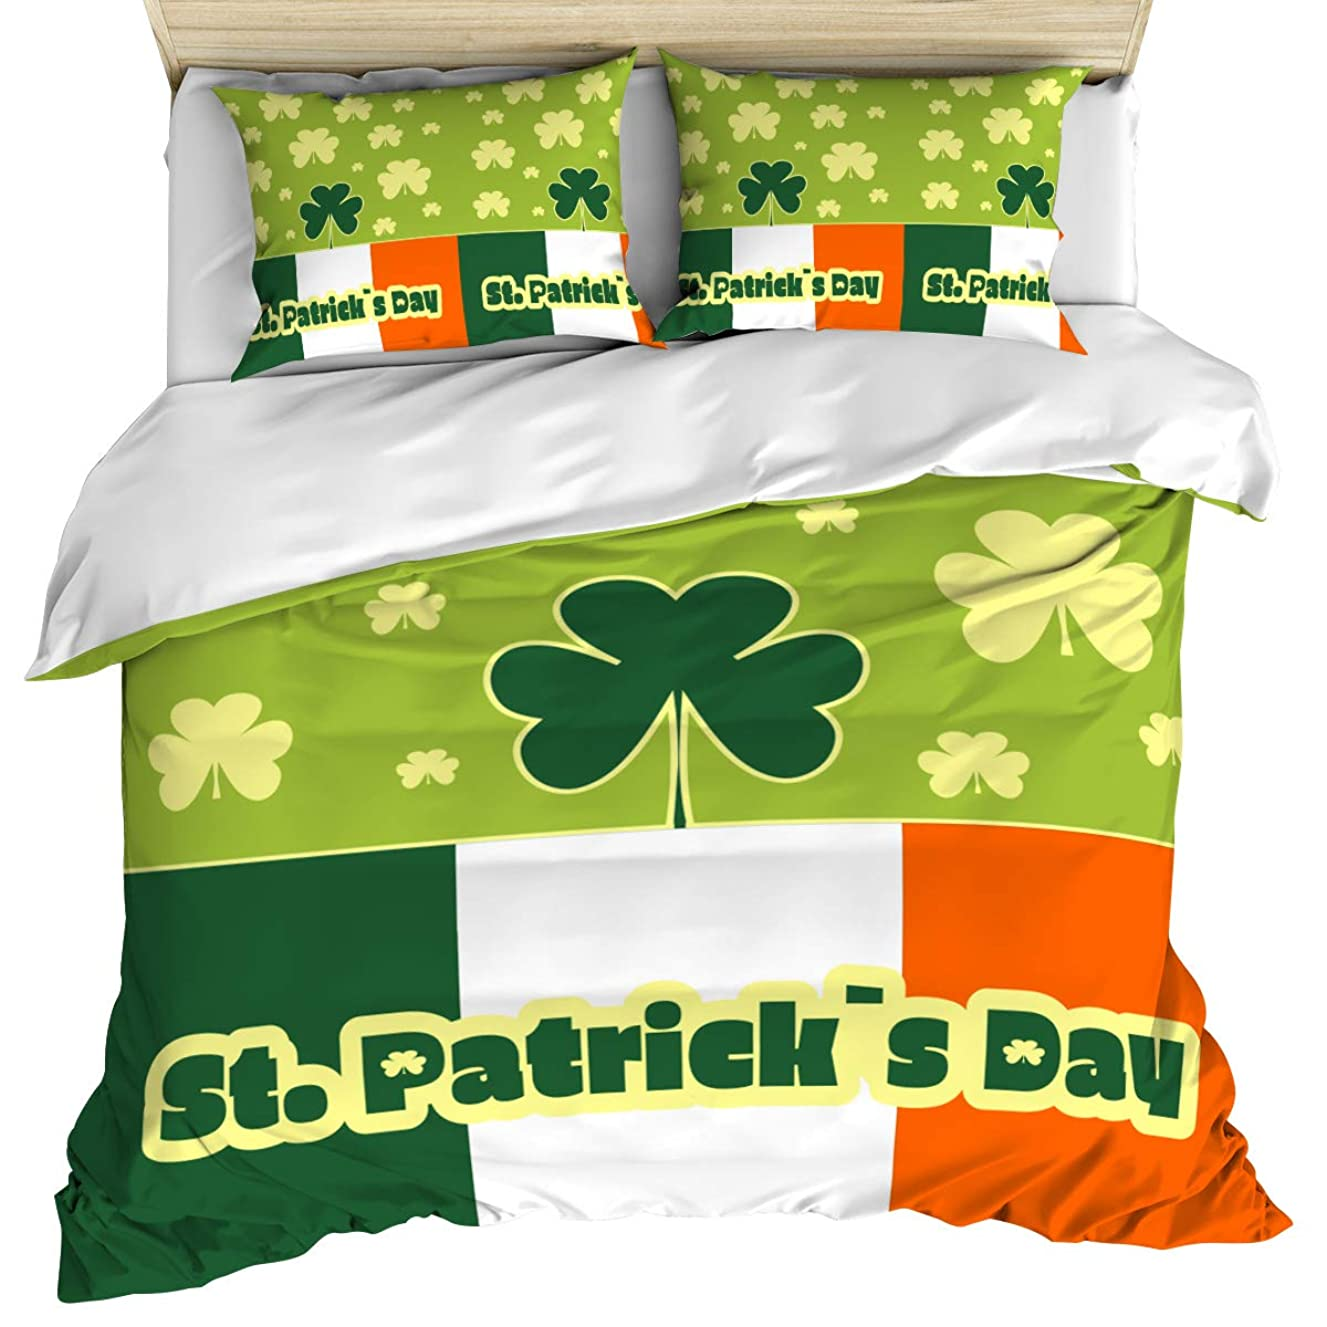 Luxury Microfiber 3 Piece Bedding Set Twin Size, Four Leaf Clover Irish Flag St Patrick's Day 3PCS Zippered Soft Duvet Cover Comforter Cover Set with Quilt Cover, Pillow Cases for Kids/Teens/Adults